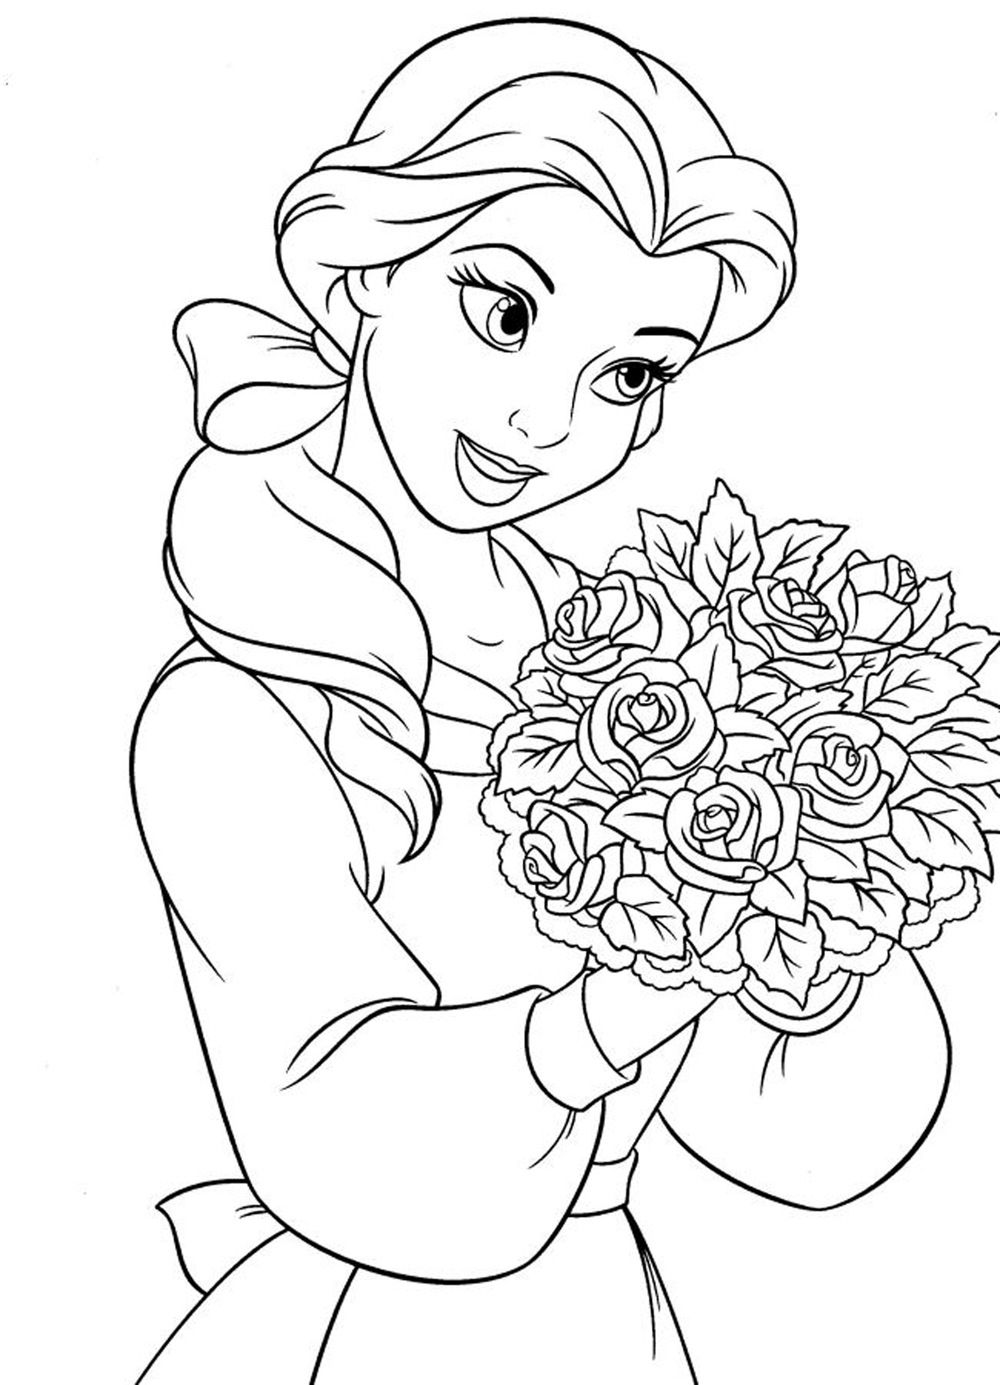 coloring books for girls princess coloring pages for girls free large images for girls books coloring